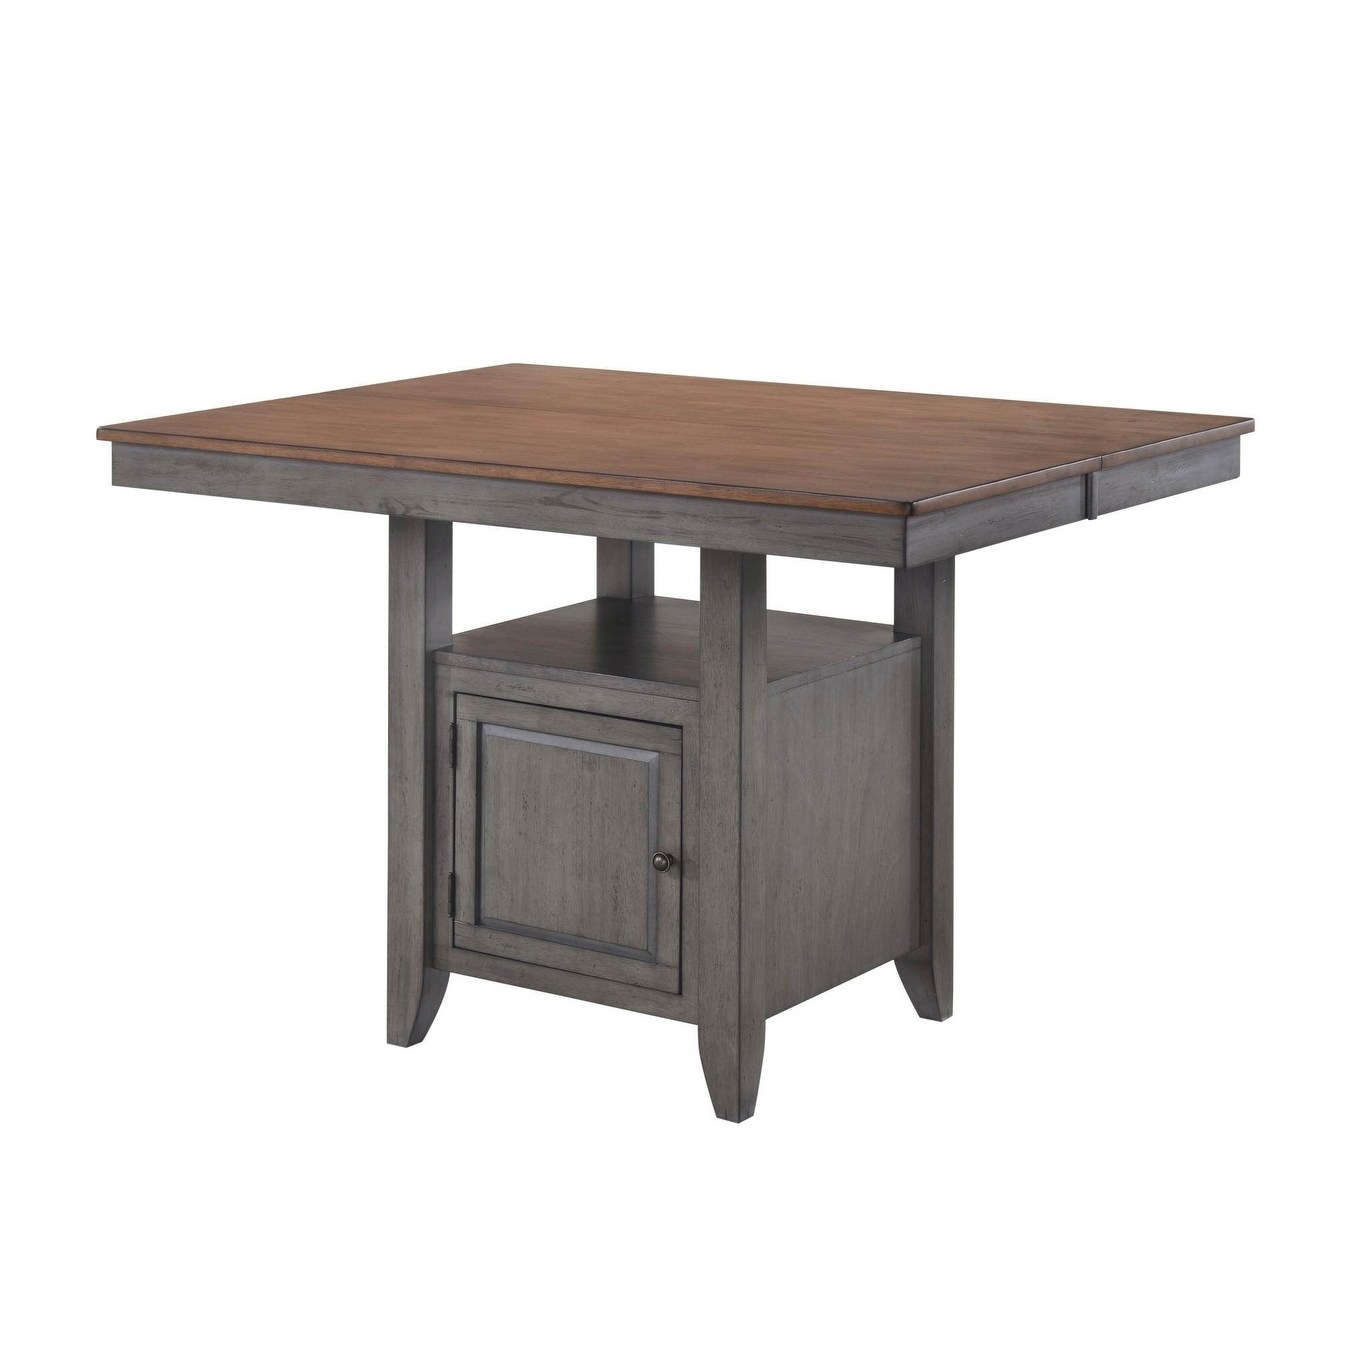 Saint Pete Storm Grey And Maple Rectangular Gathering Pertaining To Most Recently Released Drake Maple Solid Wood Dining Tables (View 2 of 15)